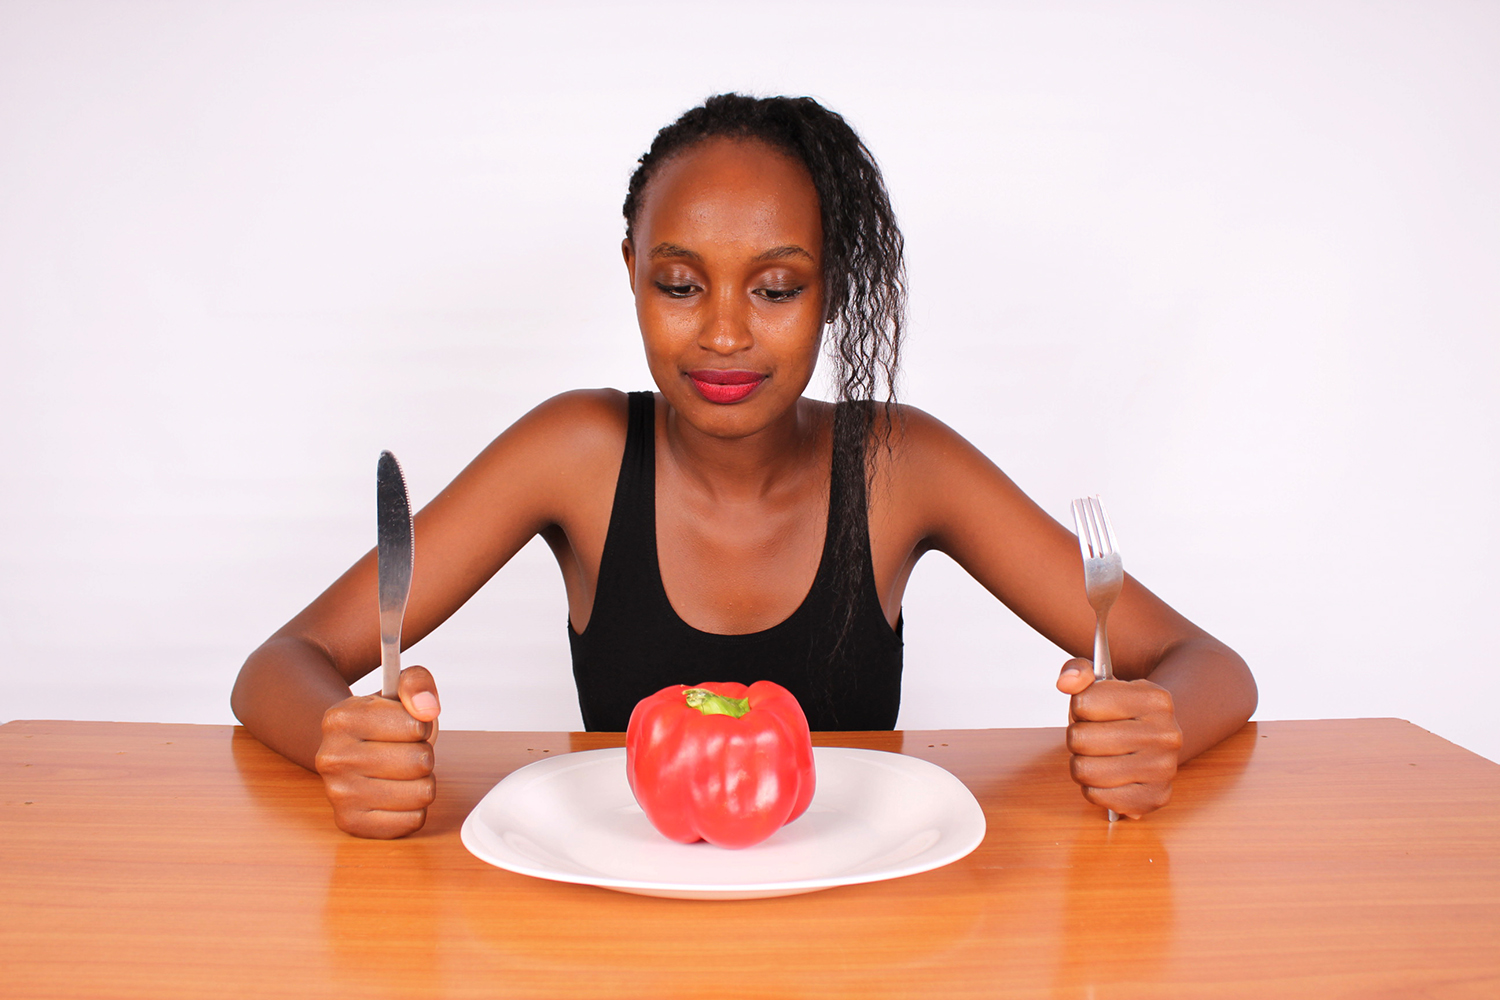 Hungry Dieting Woman Seated on Table With Red Pepper on Plate